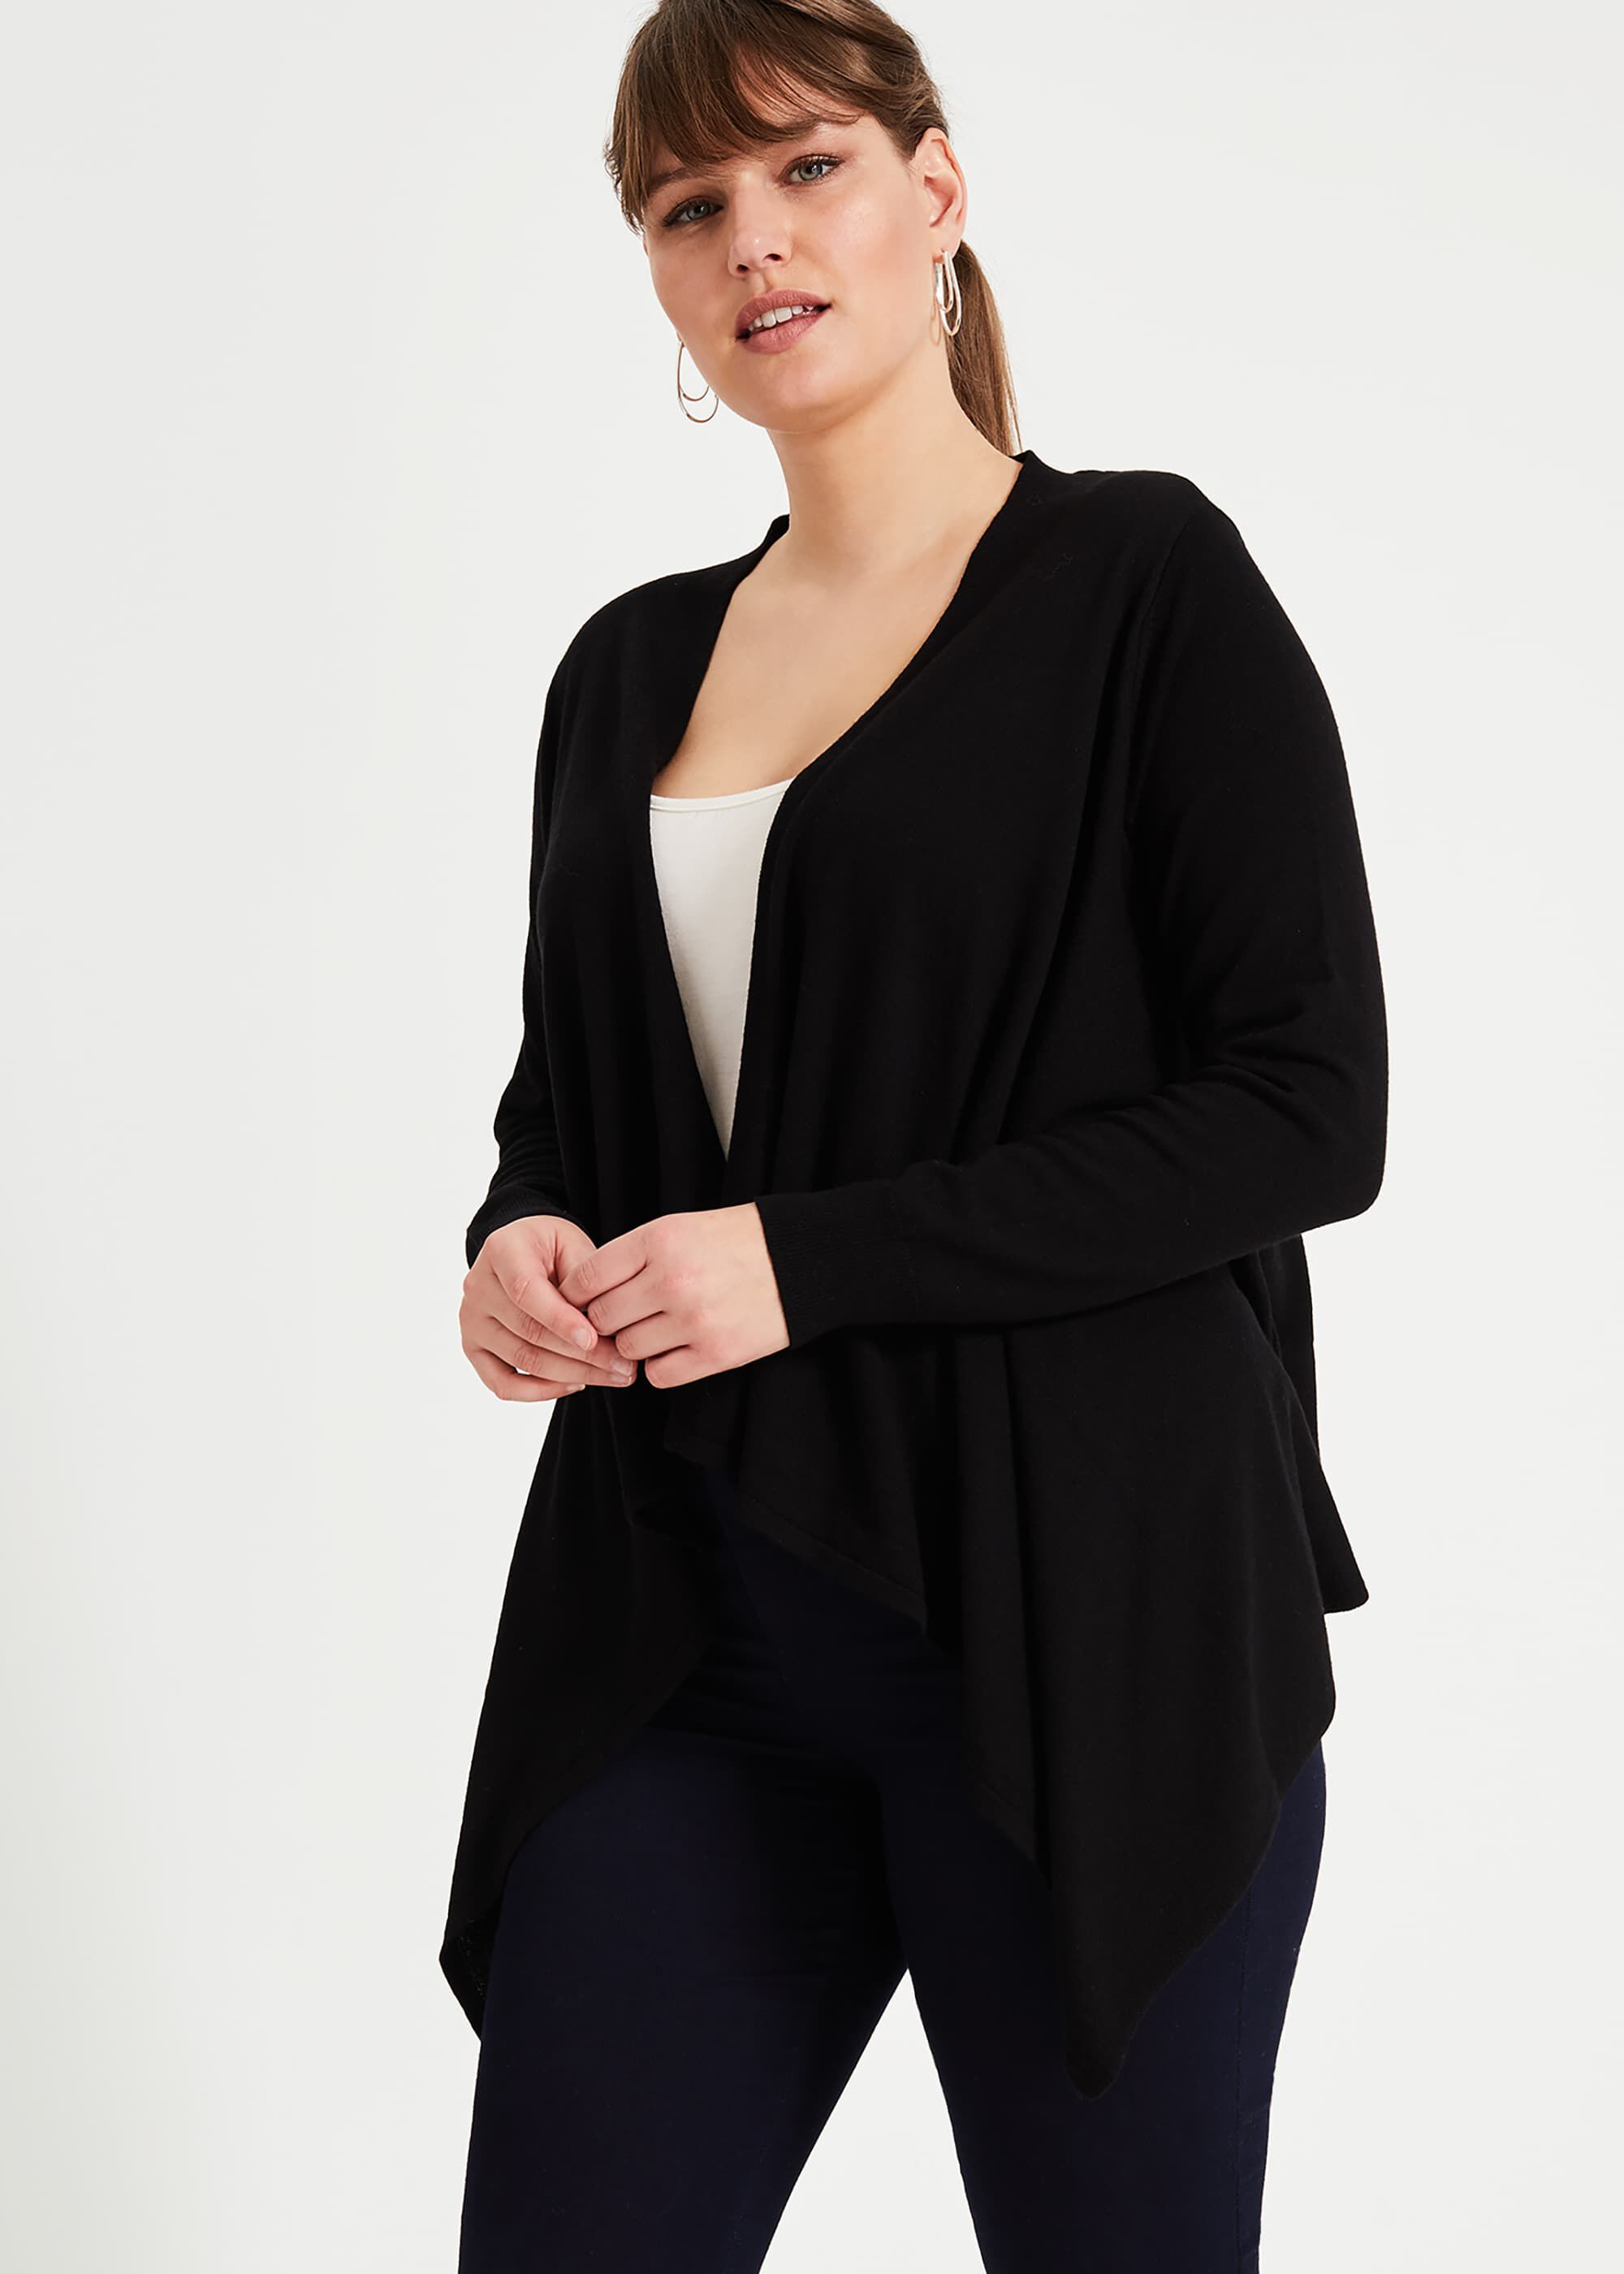 Studio 8 Freya Waterfall Cardigan, Black, Cardigan